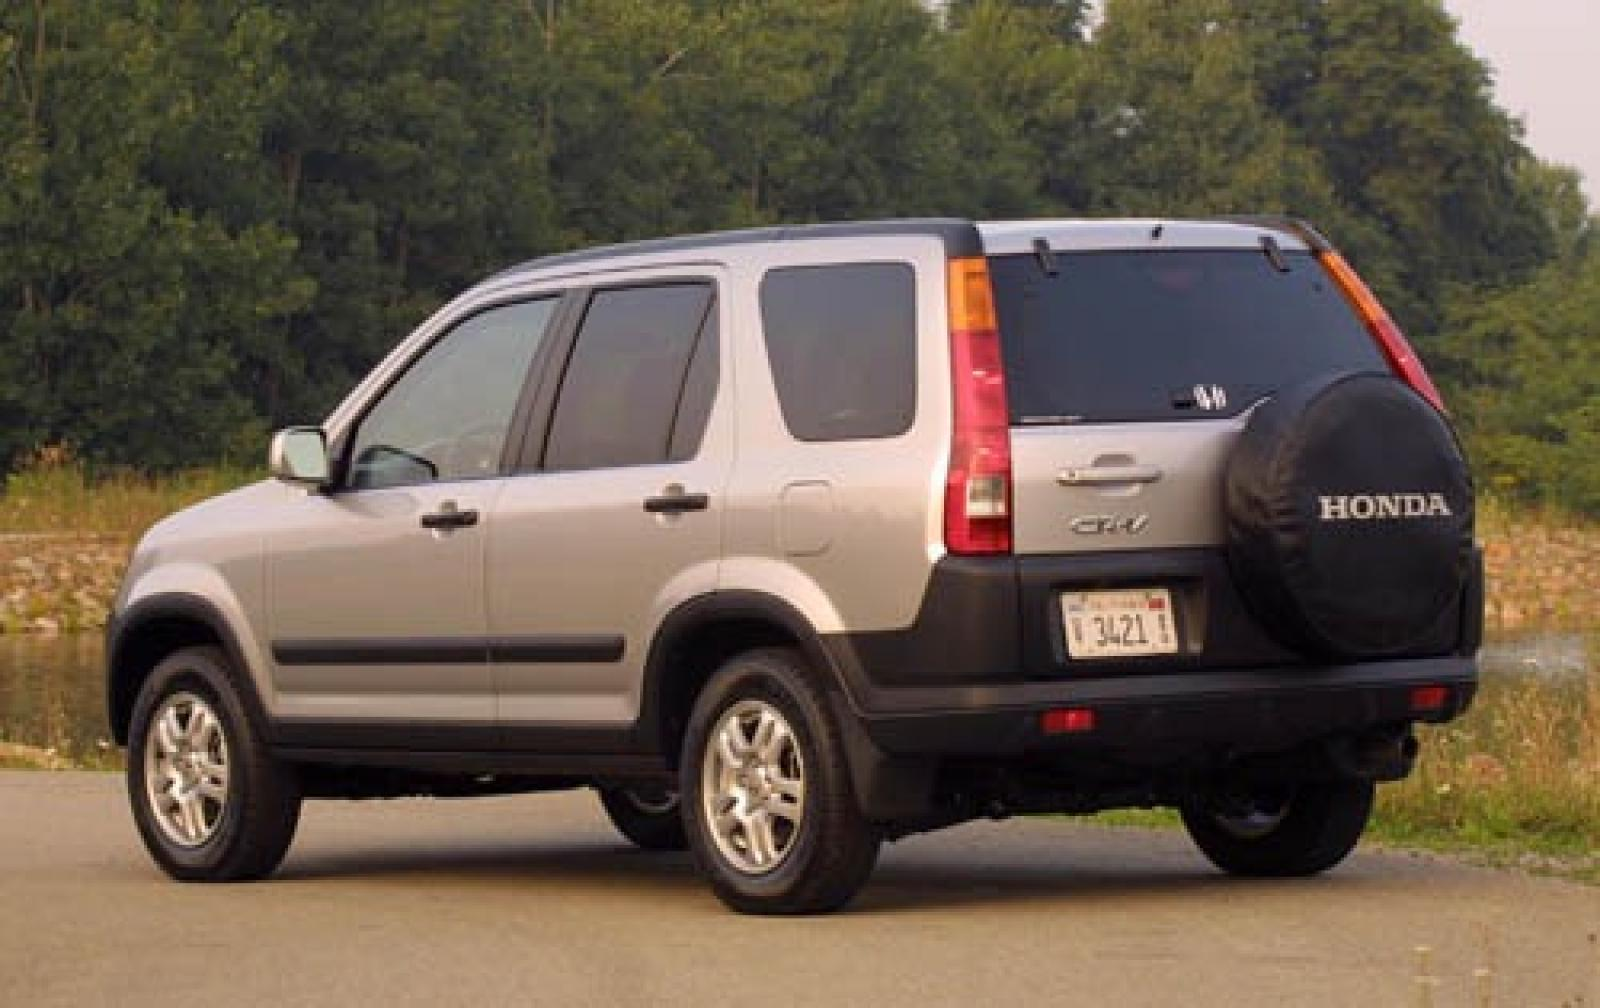 2004 honda cr v information and photos zombiedrive for Is a honda crv a suv